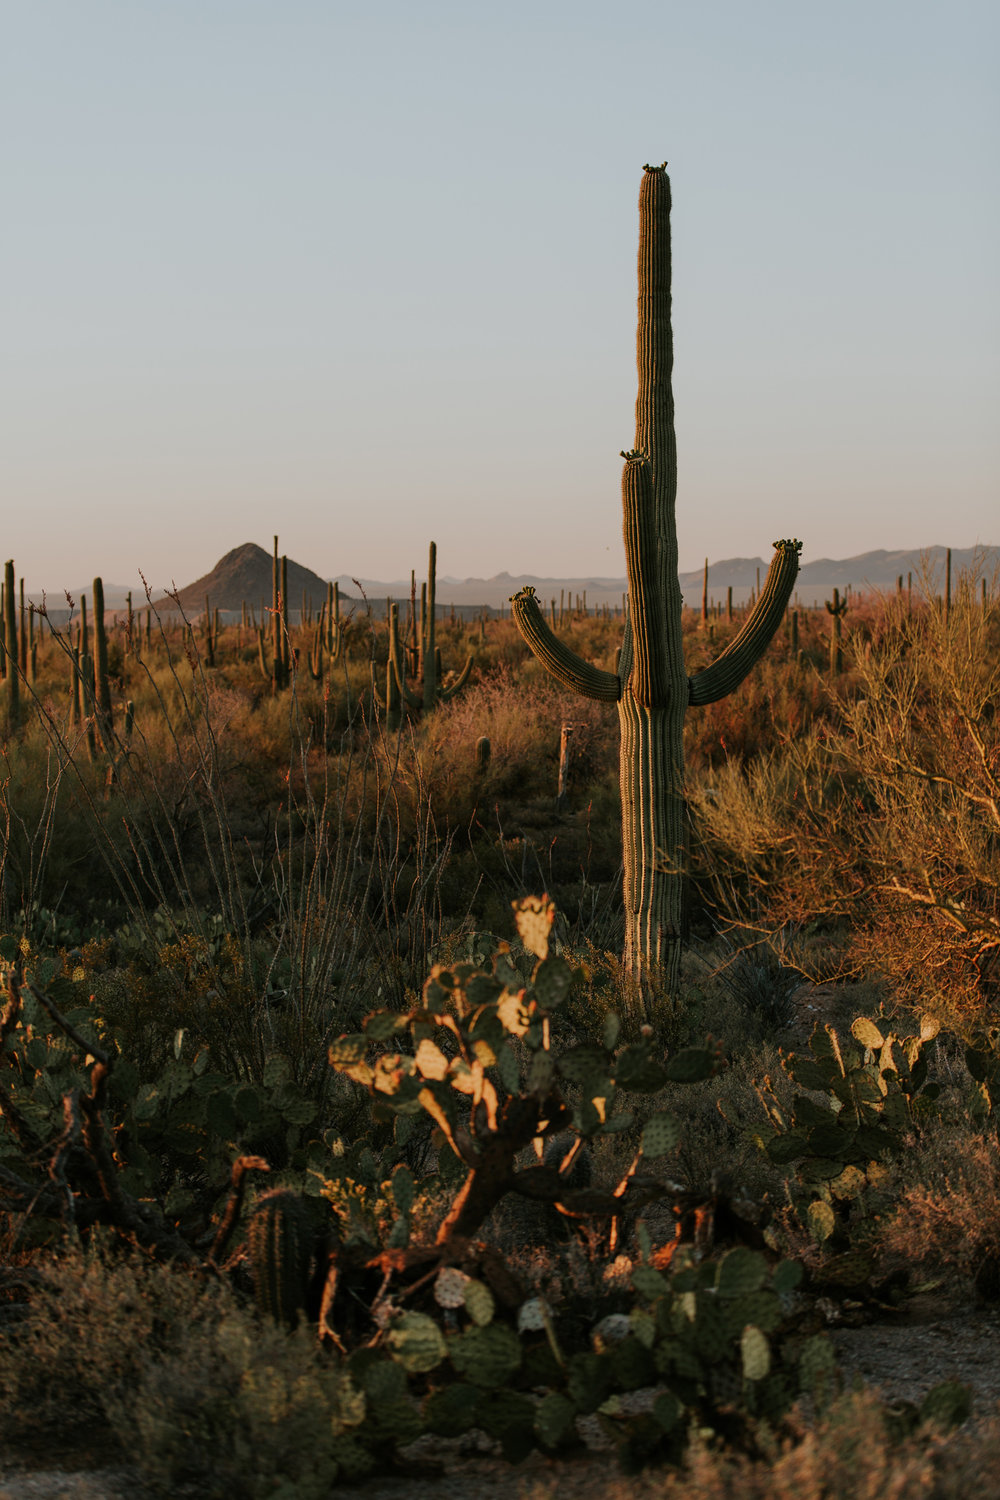 CindyGiovagnoli_Tucson_Arizona_Saguaro_National_Park_cactus_sunset_blooming_spring_sunset_petroglyphs_Native_American_indigenous-009.jpg